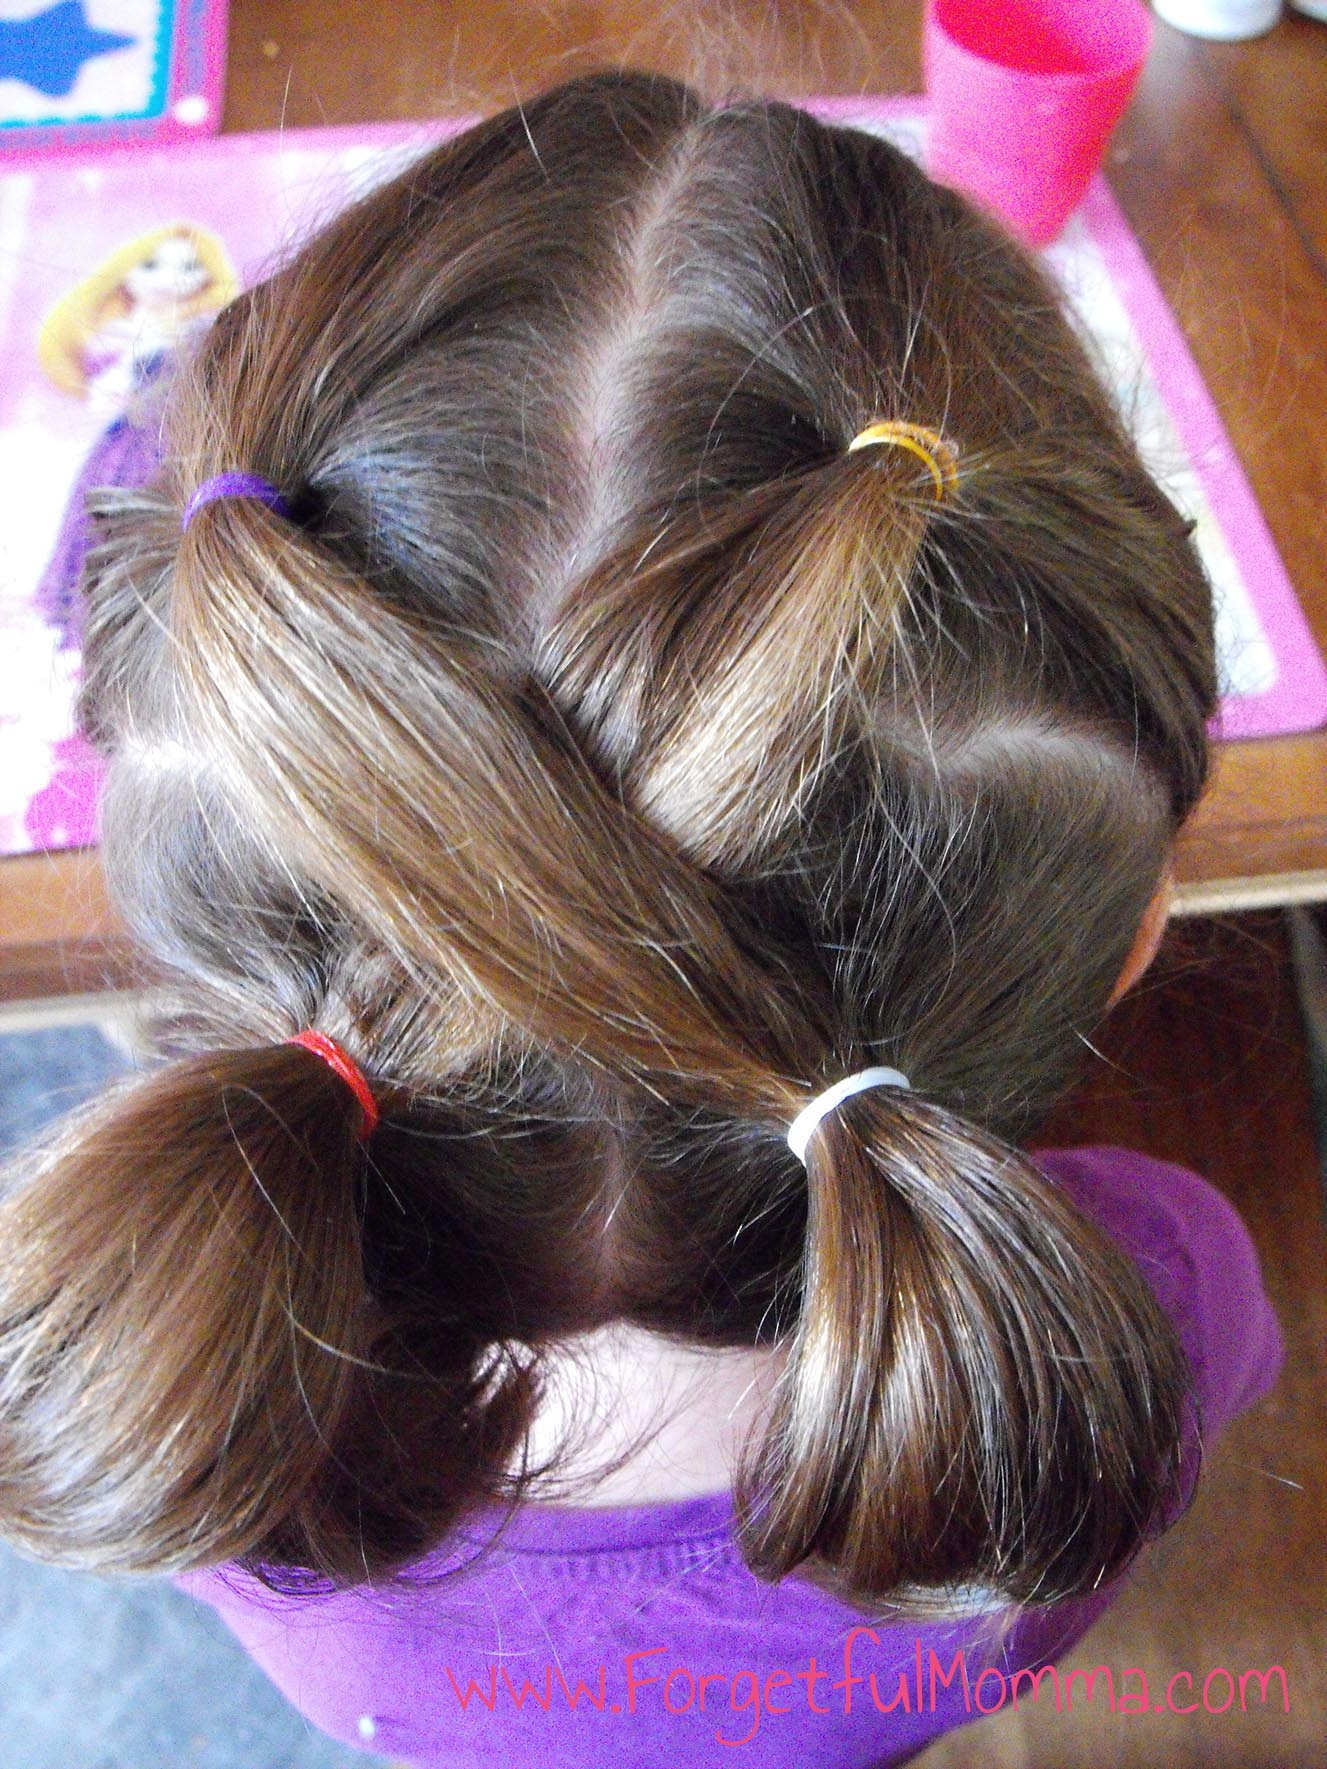 Best ideas about Easy Little Girl Hairstyles . Save or Pin Back to School Hair for Little Girls For ful Momma Now.